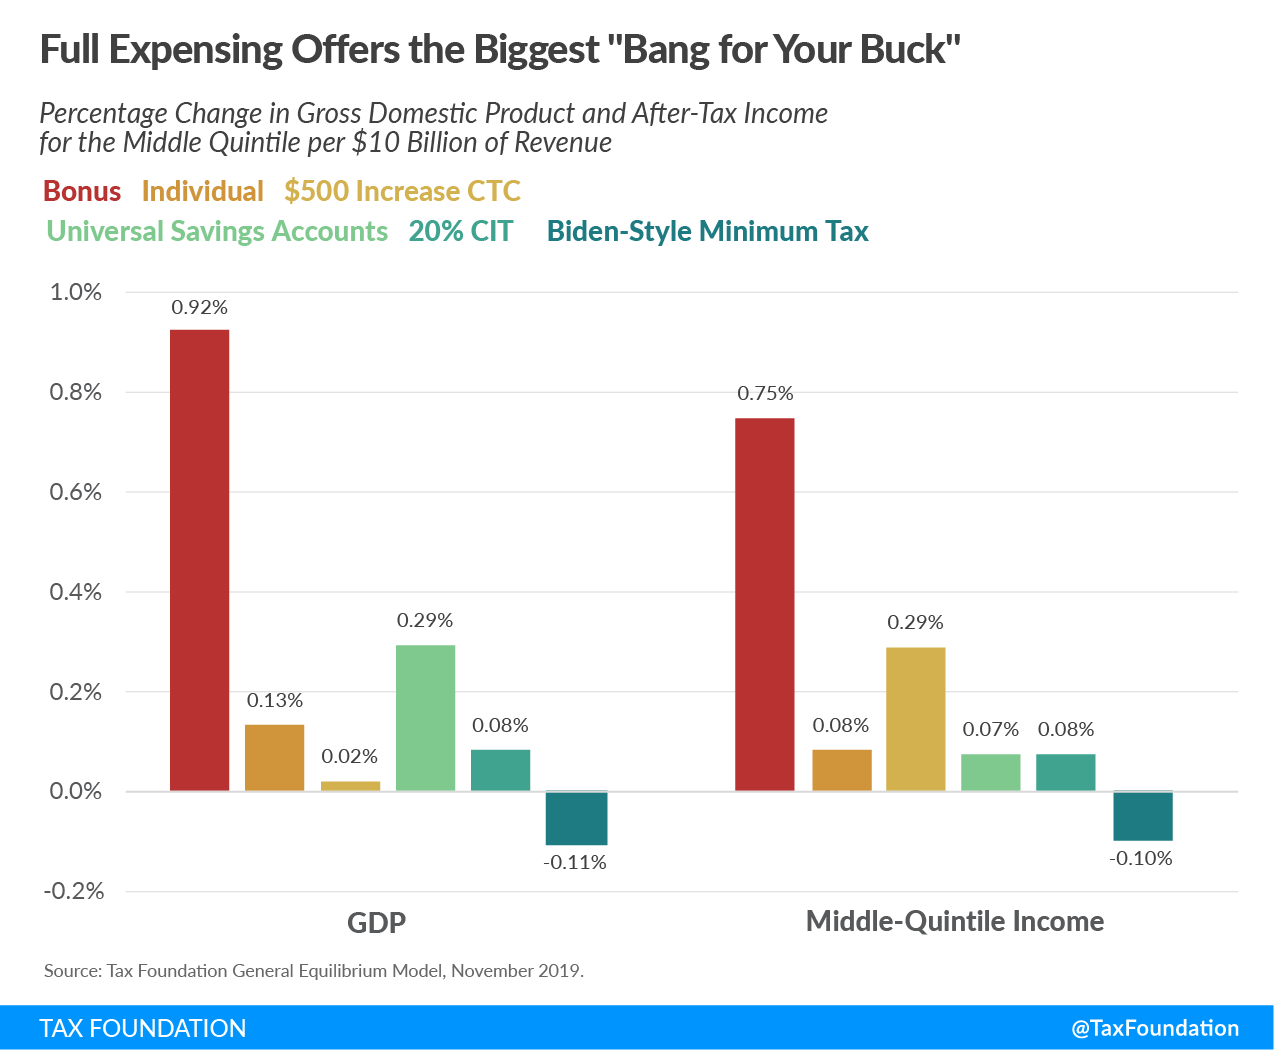 "Full expensing offers biggest ""bank for your buck"" for new tax reform options. 100 percent bonus depreciation, individual income tax cut, corporate tax increase, universal savings accounts, corporate tax cut, and Biden-style minimum income tax, dynamic scoring economic model"